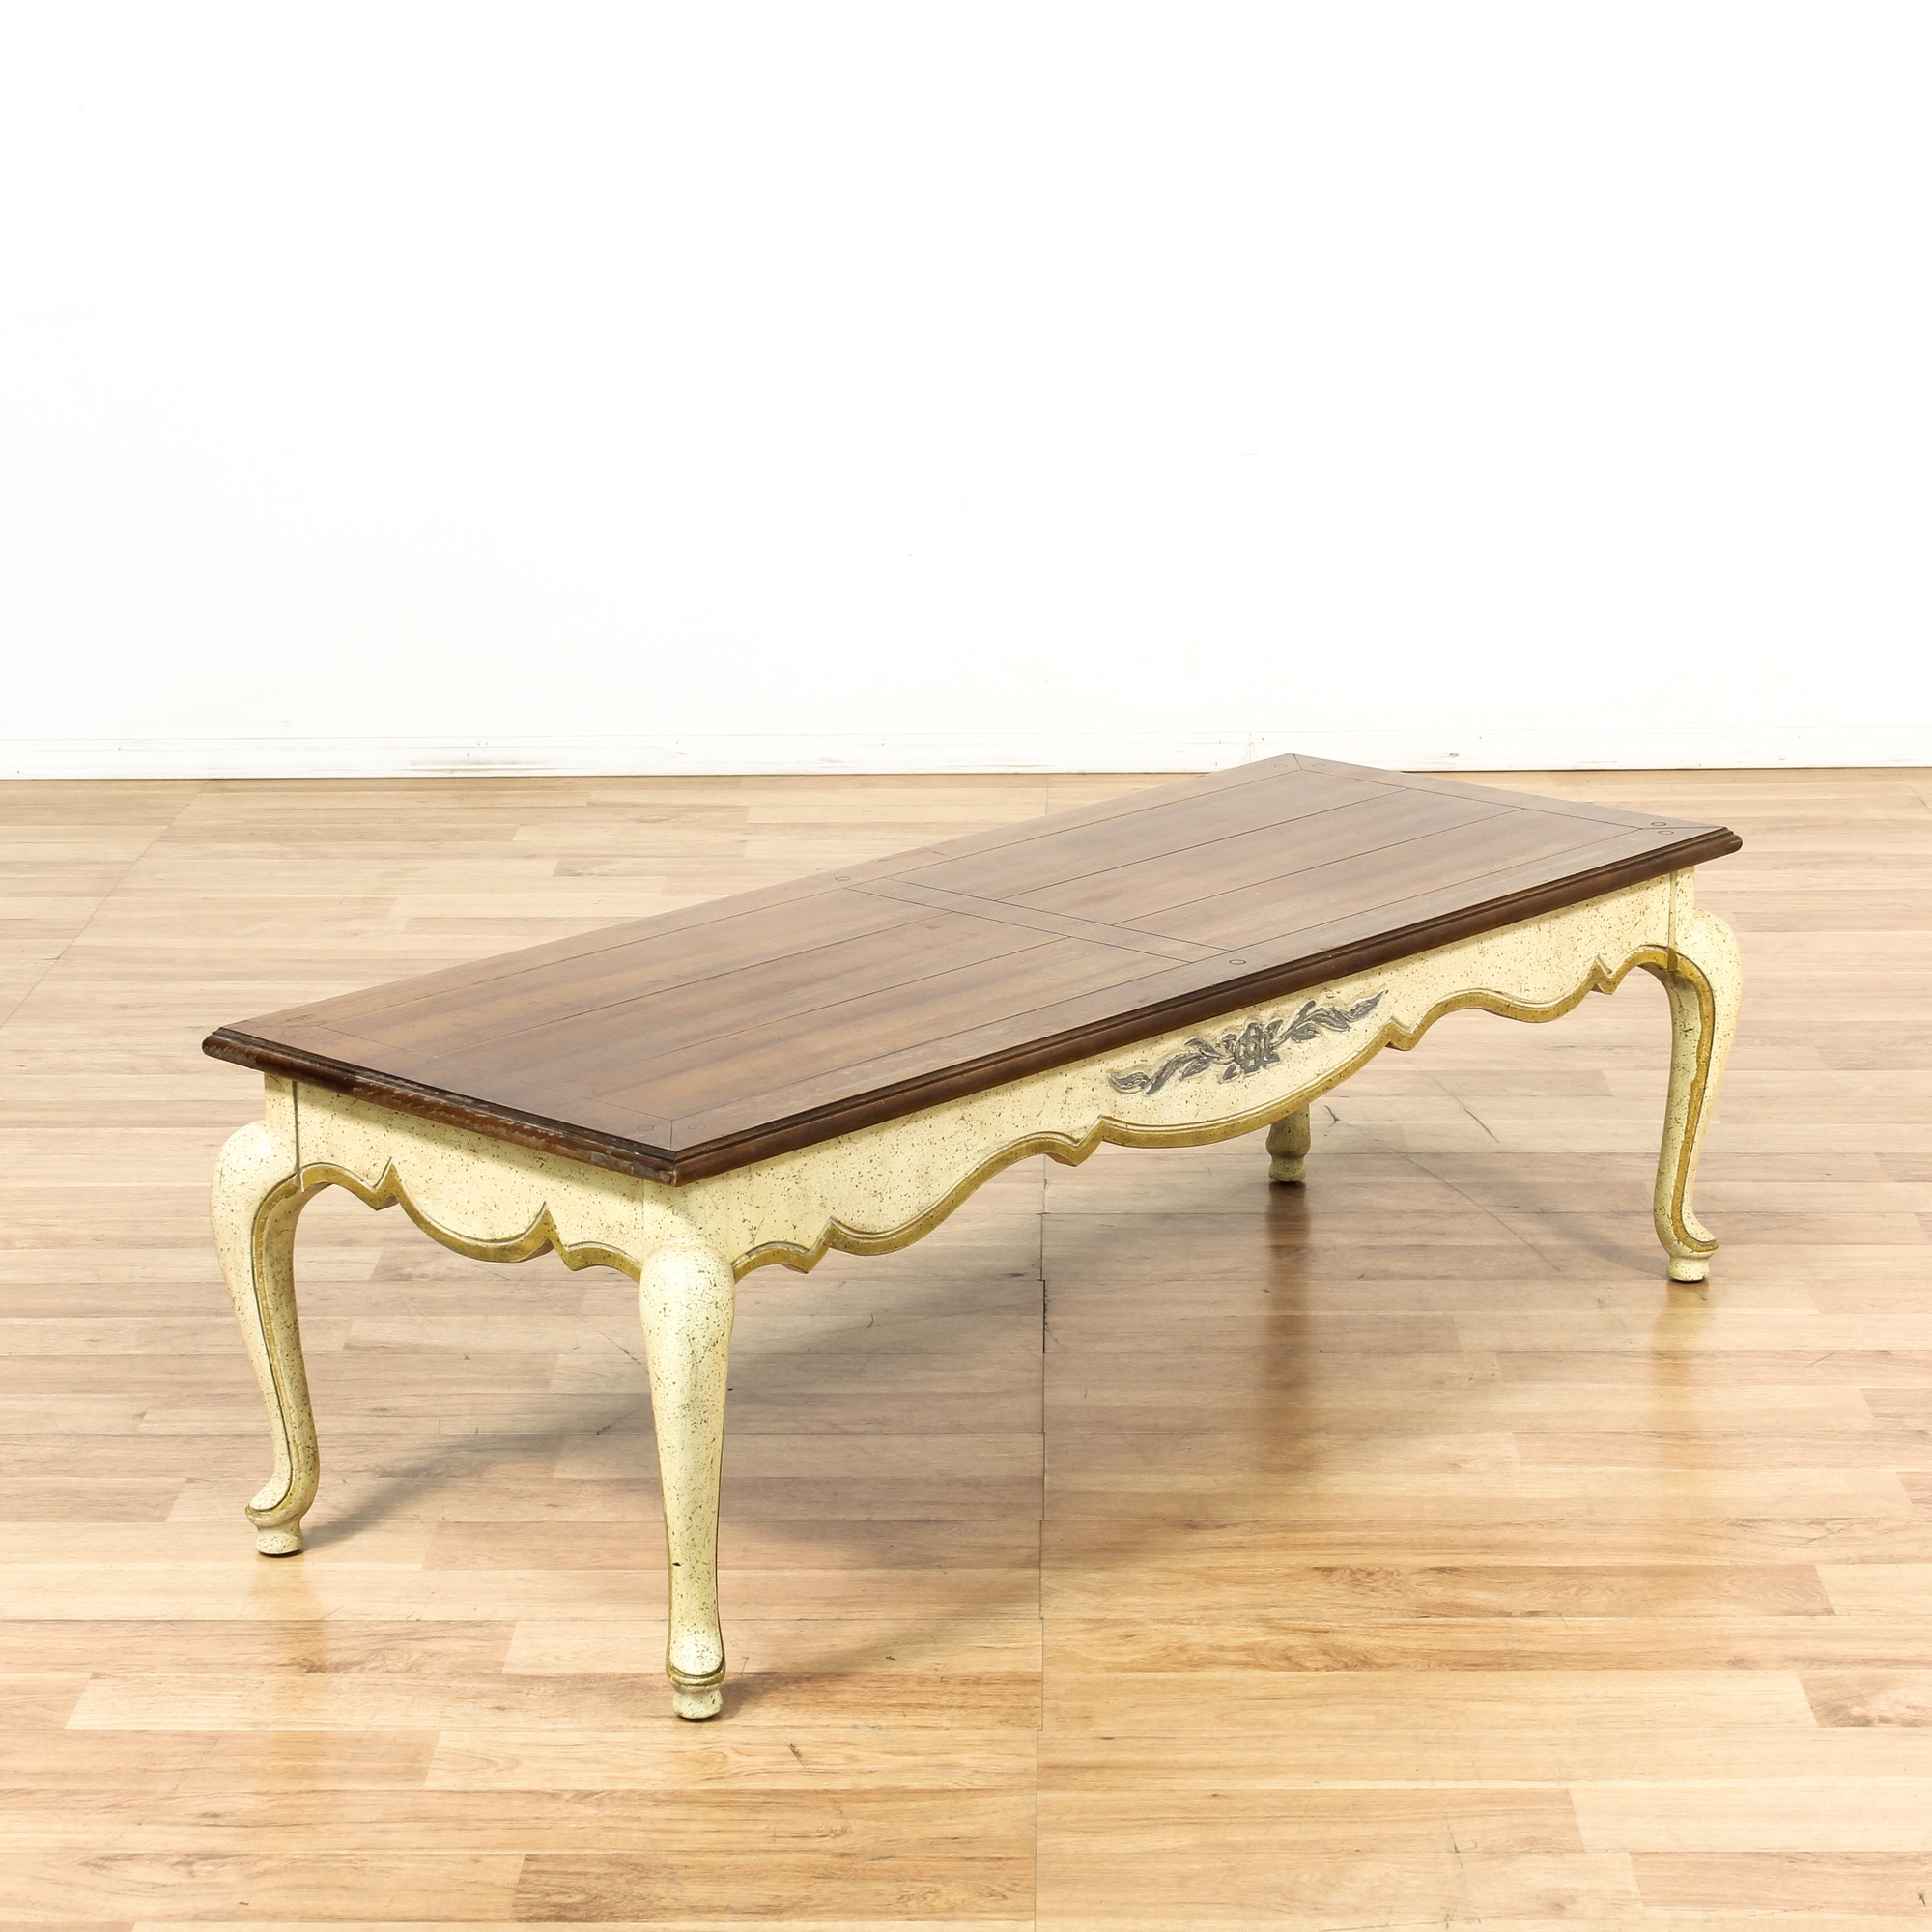 French Provincial Cream & Gold Wood Coffee Table